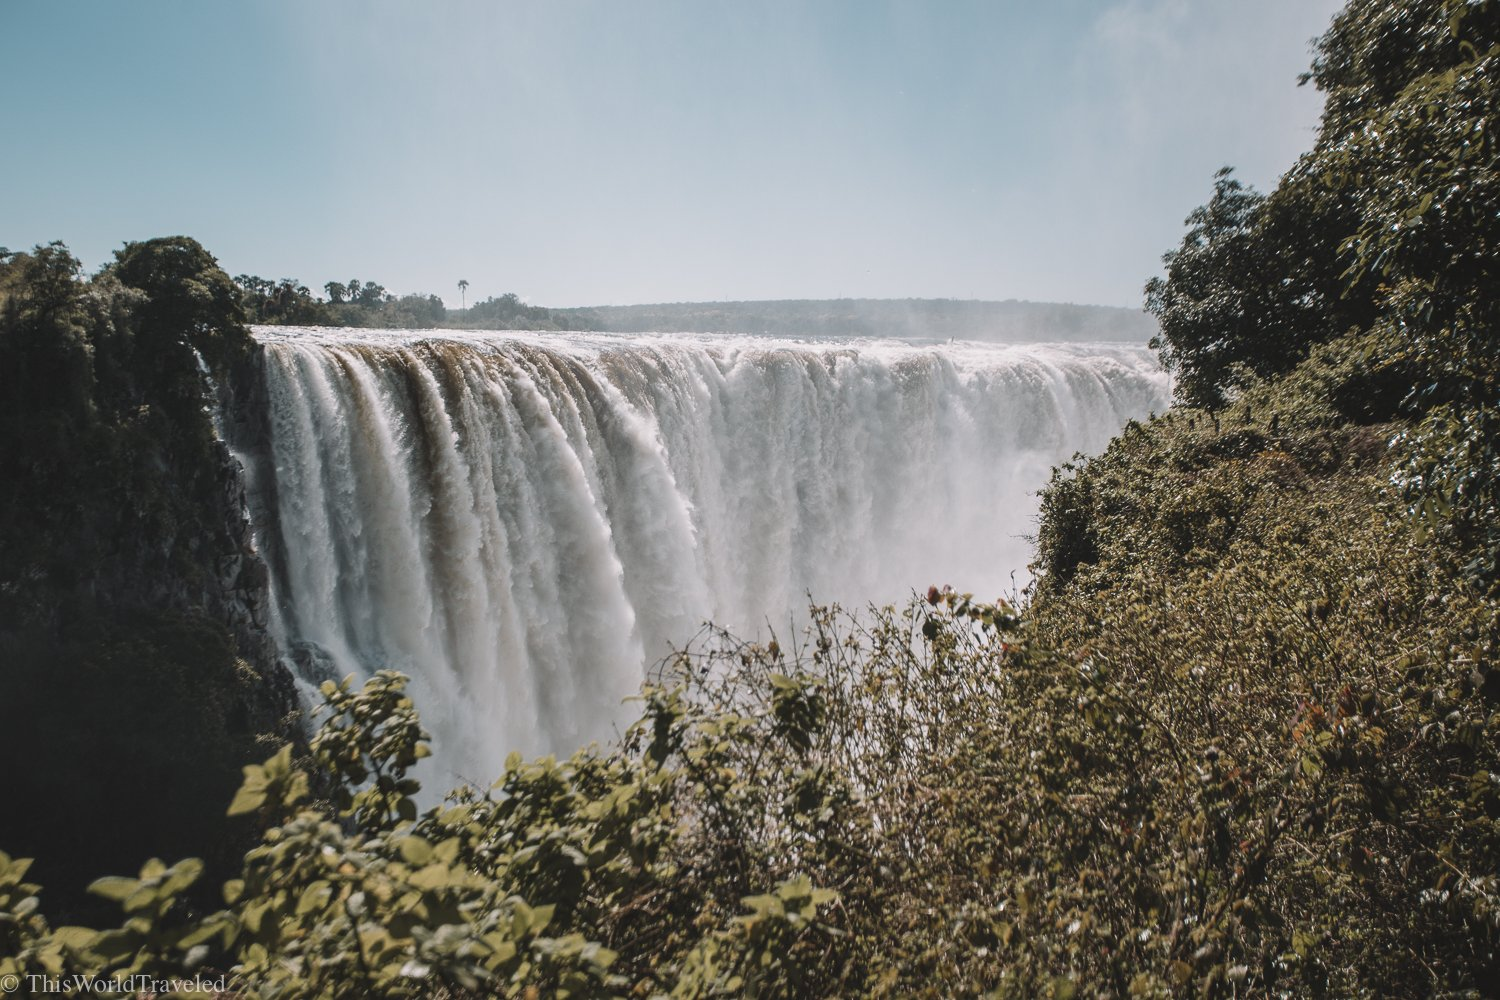 The Roaring Thunder of Victoria Falls: The Largest Waterfall in the World